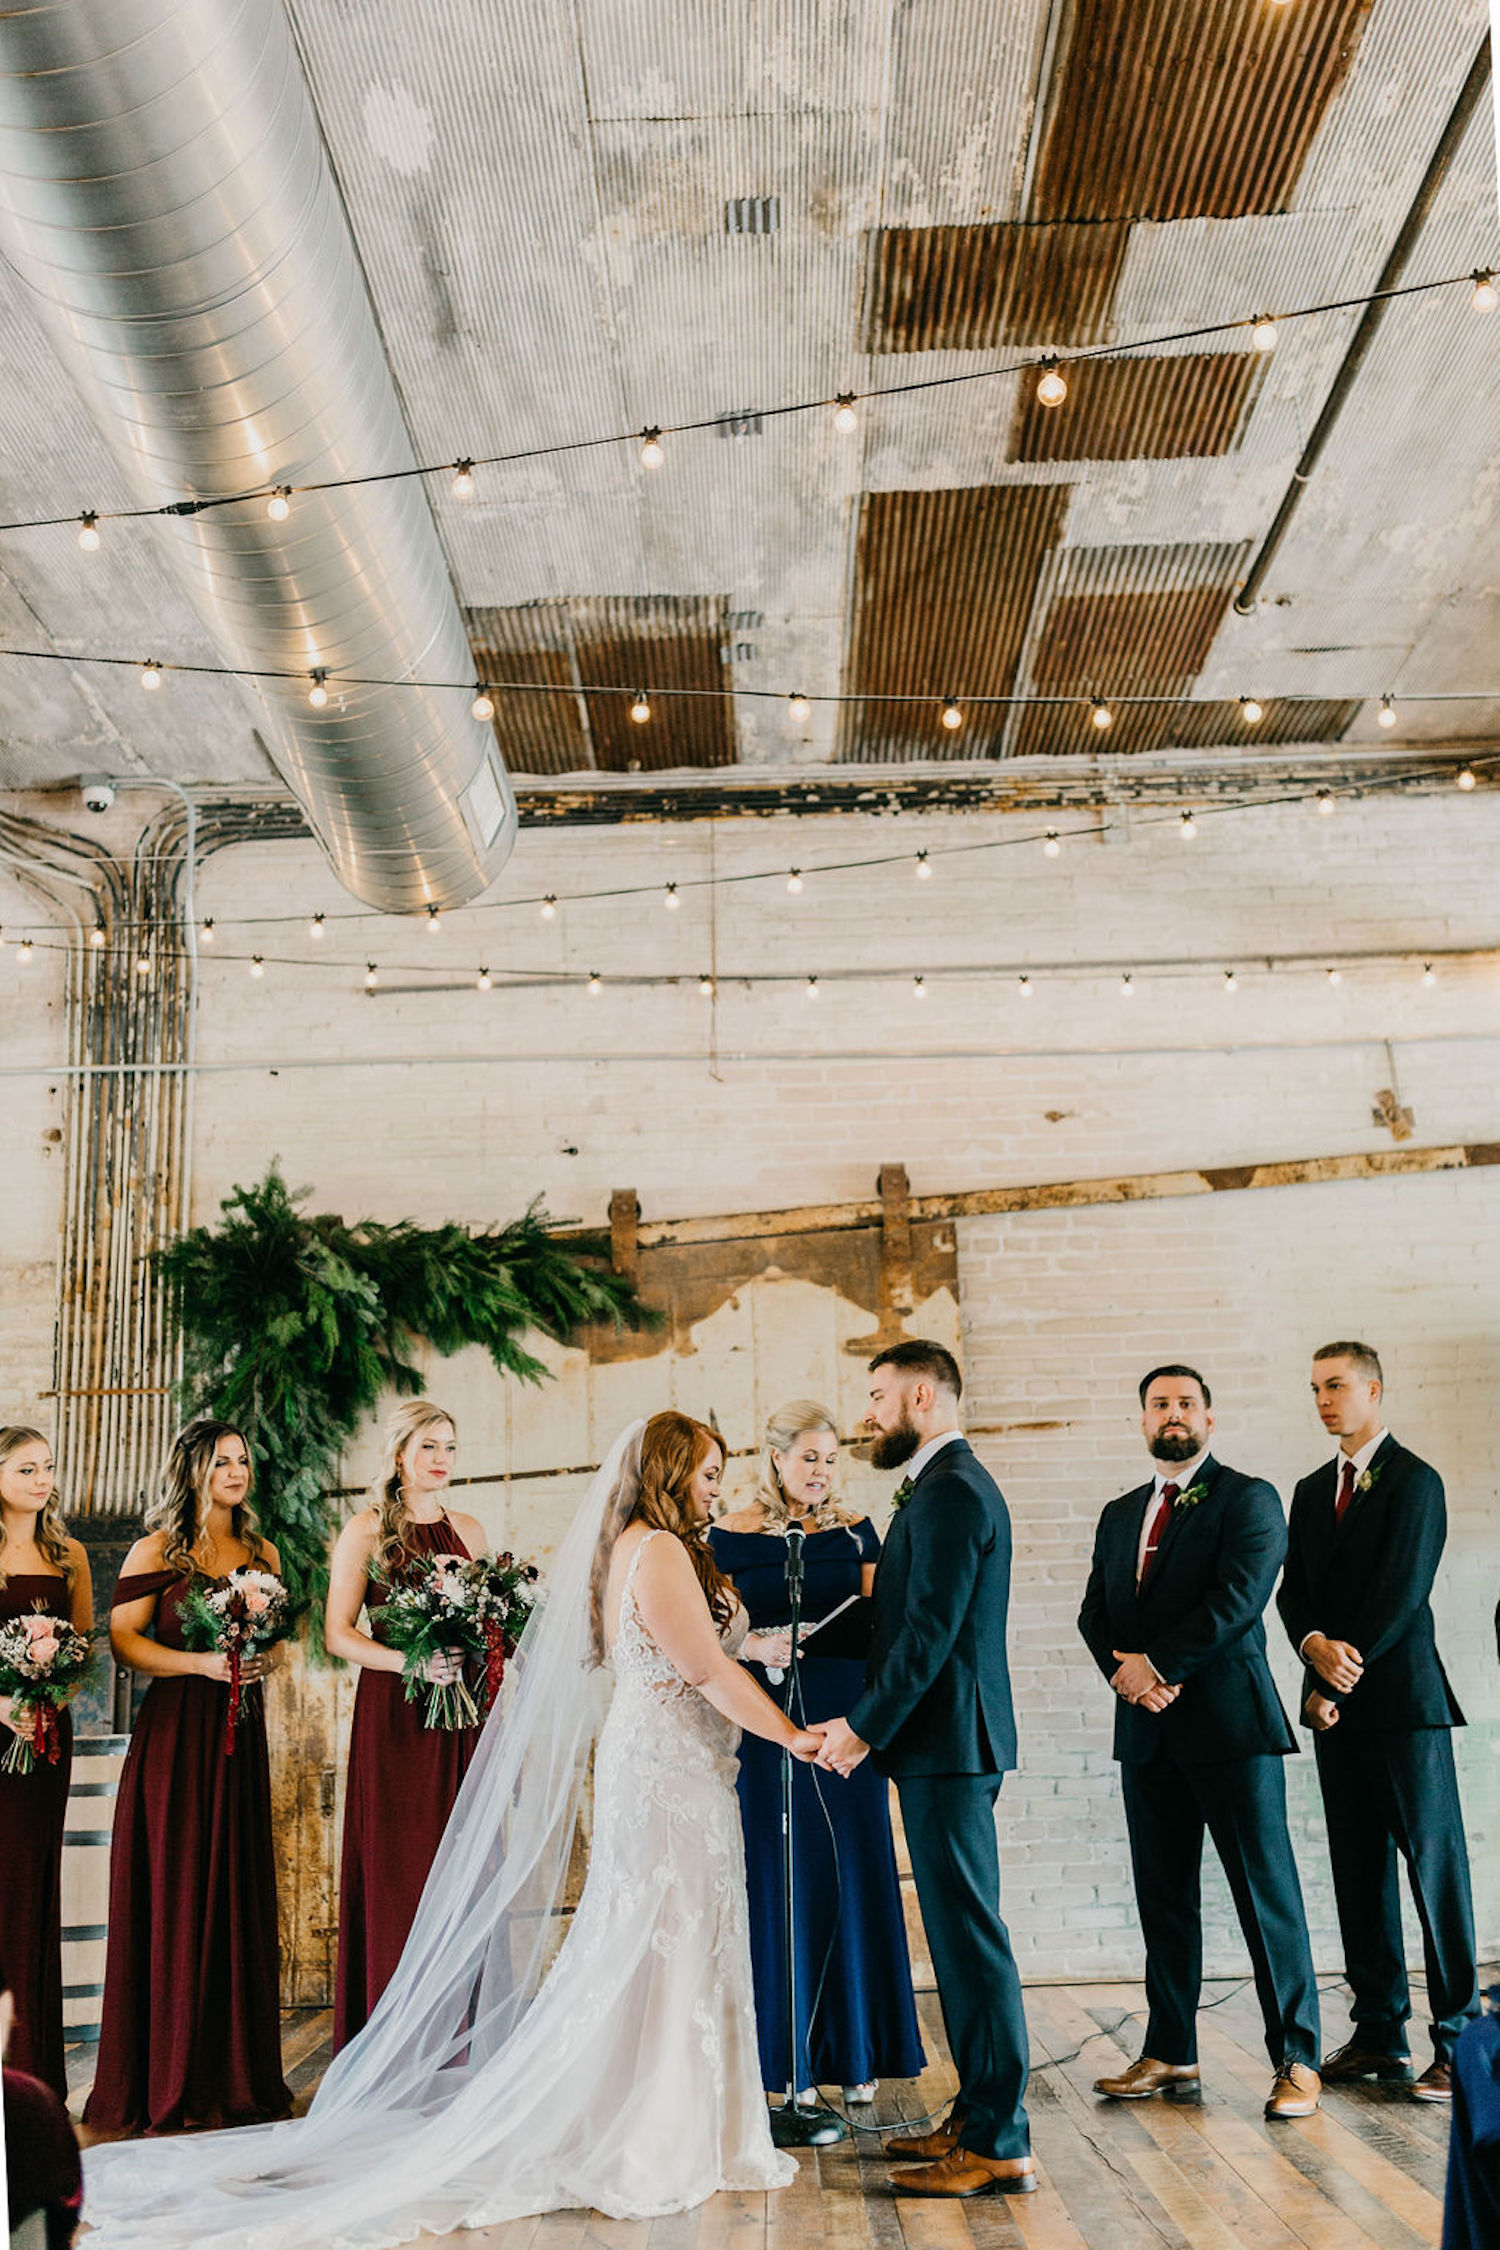 Bride and groom at alter of their Journeyman Distillery wedding